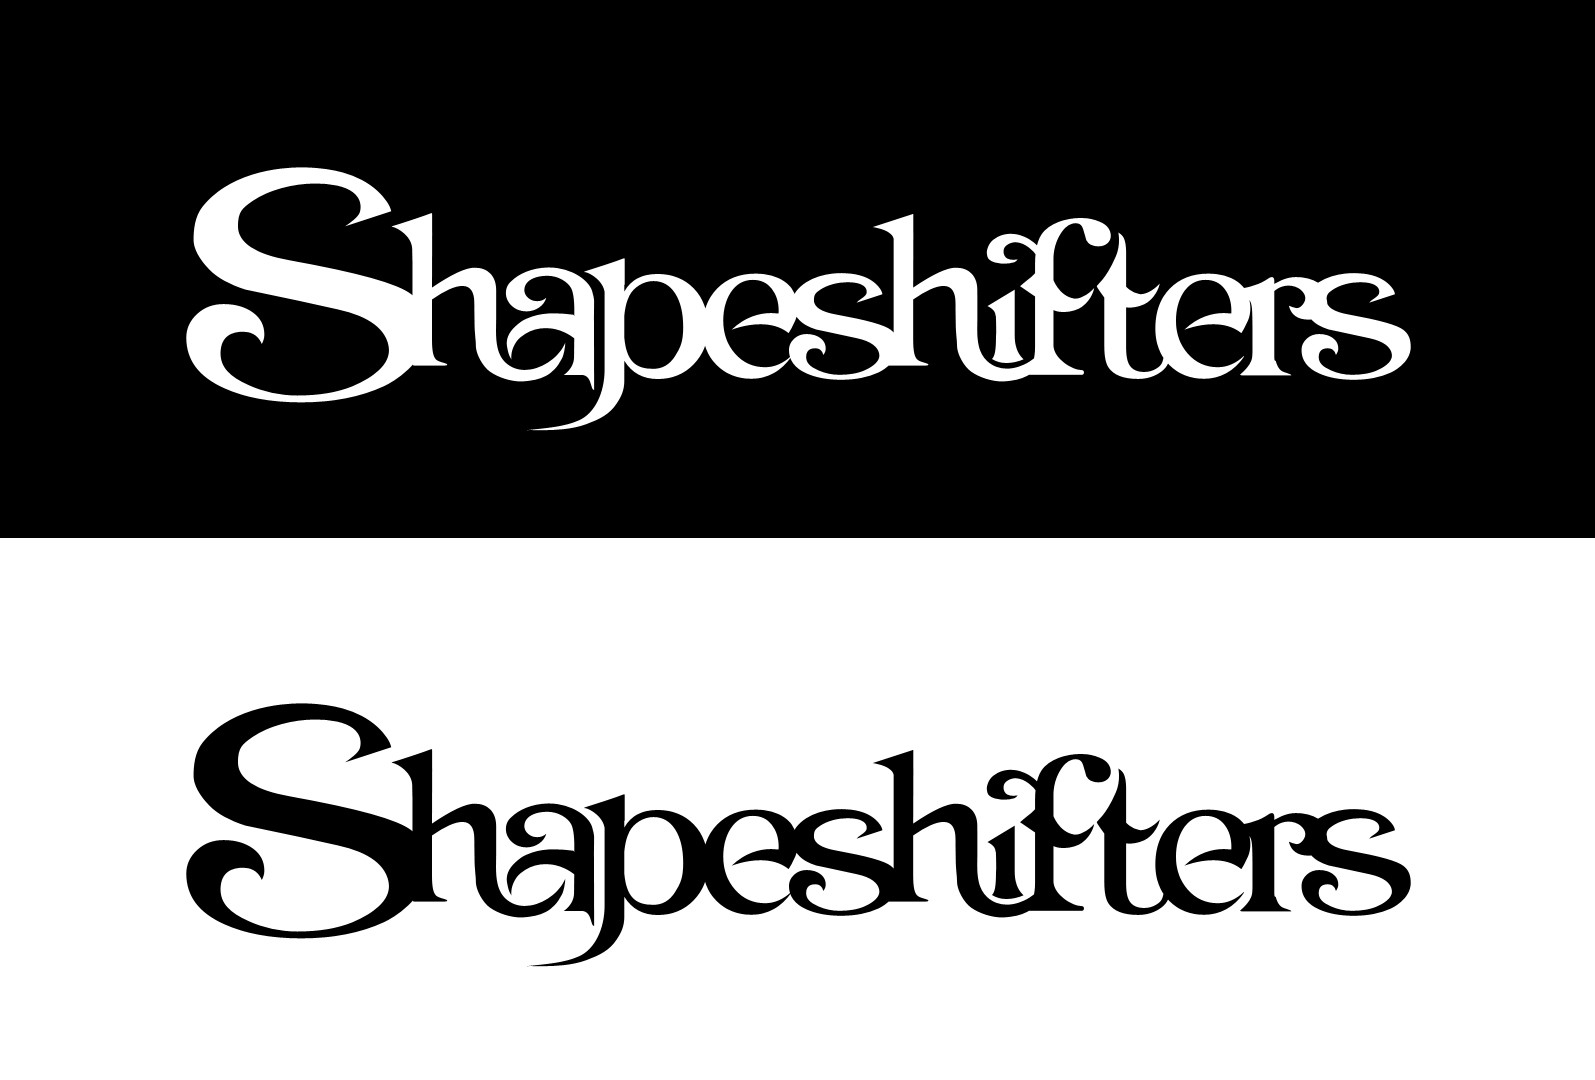 Jeff christy logotype shapeshifters simple